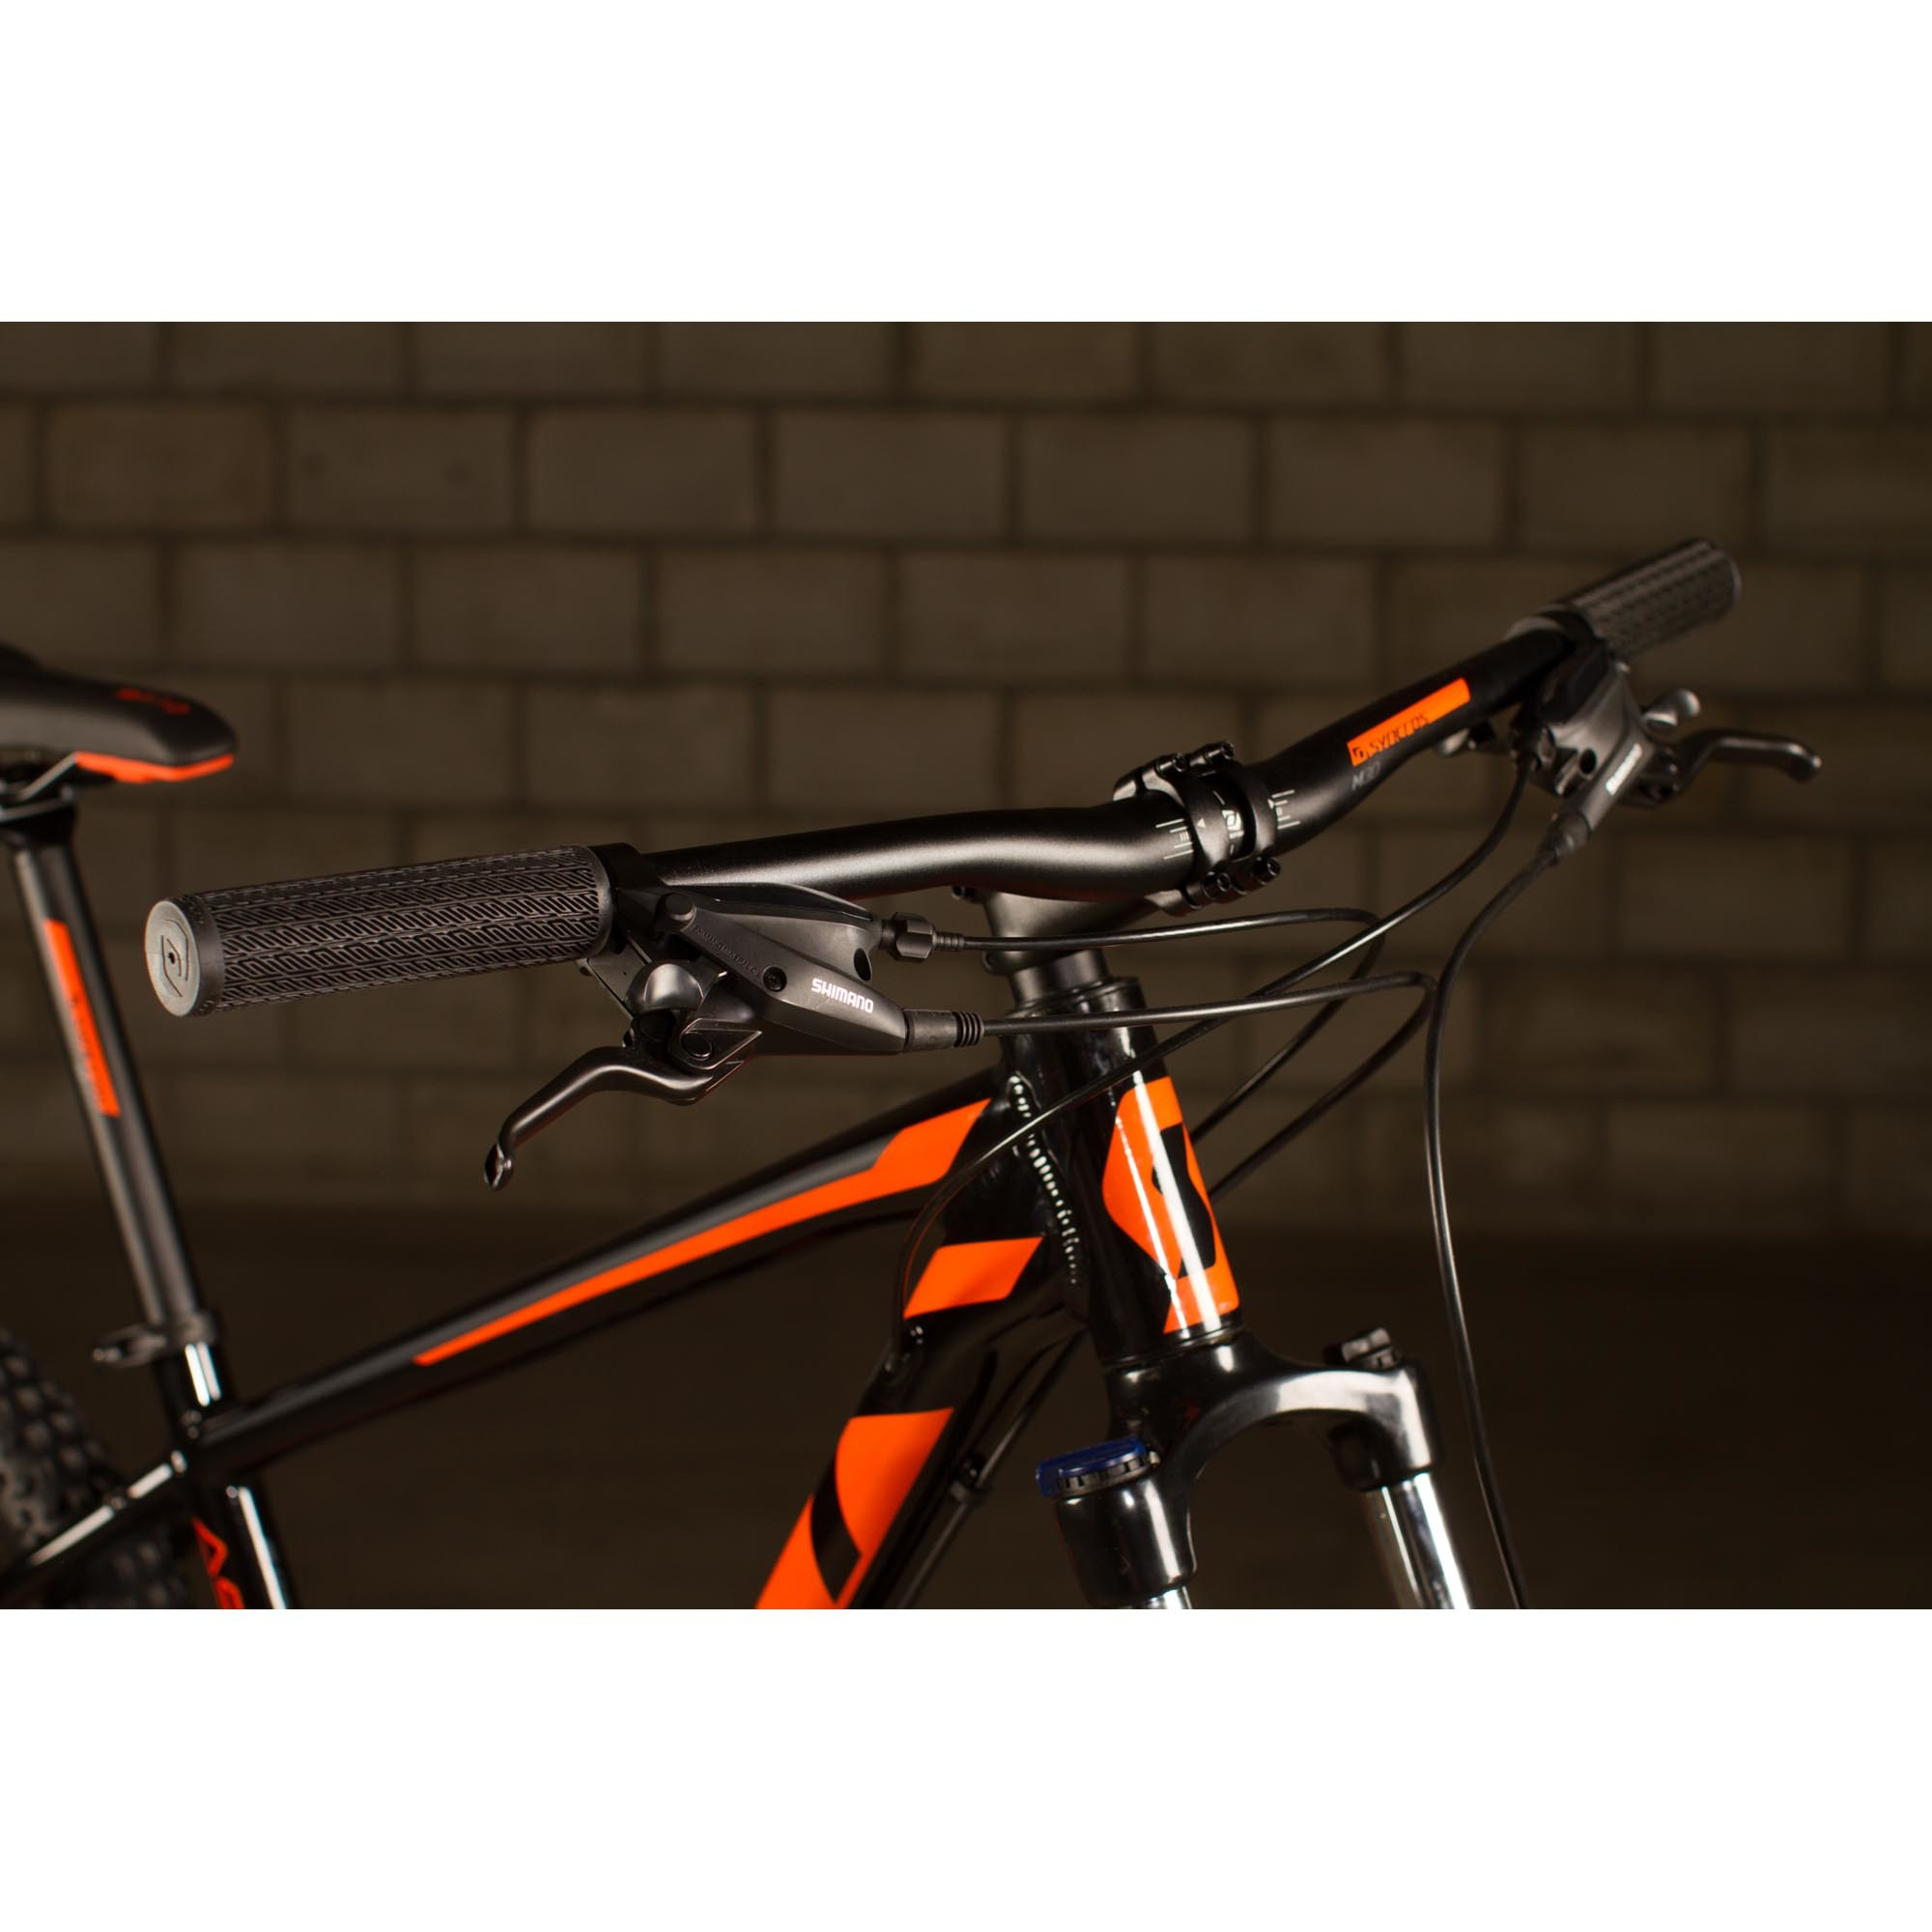 Bicicletta SCOTT Aspect 750 black/orange